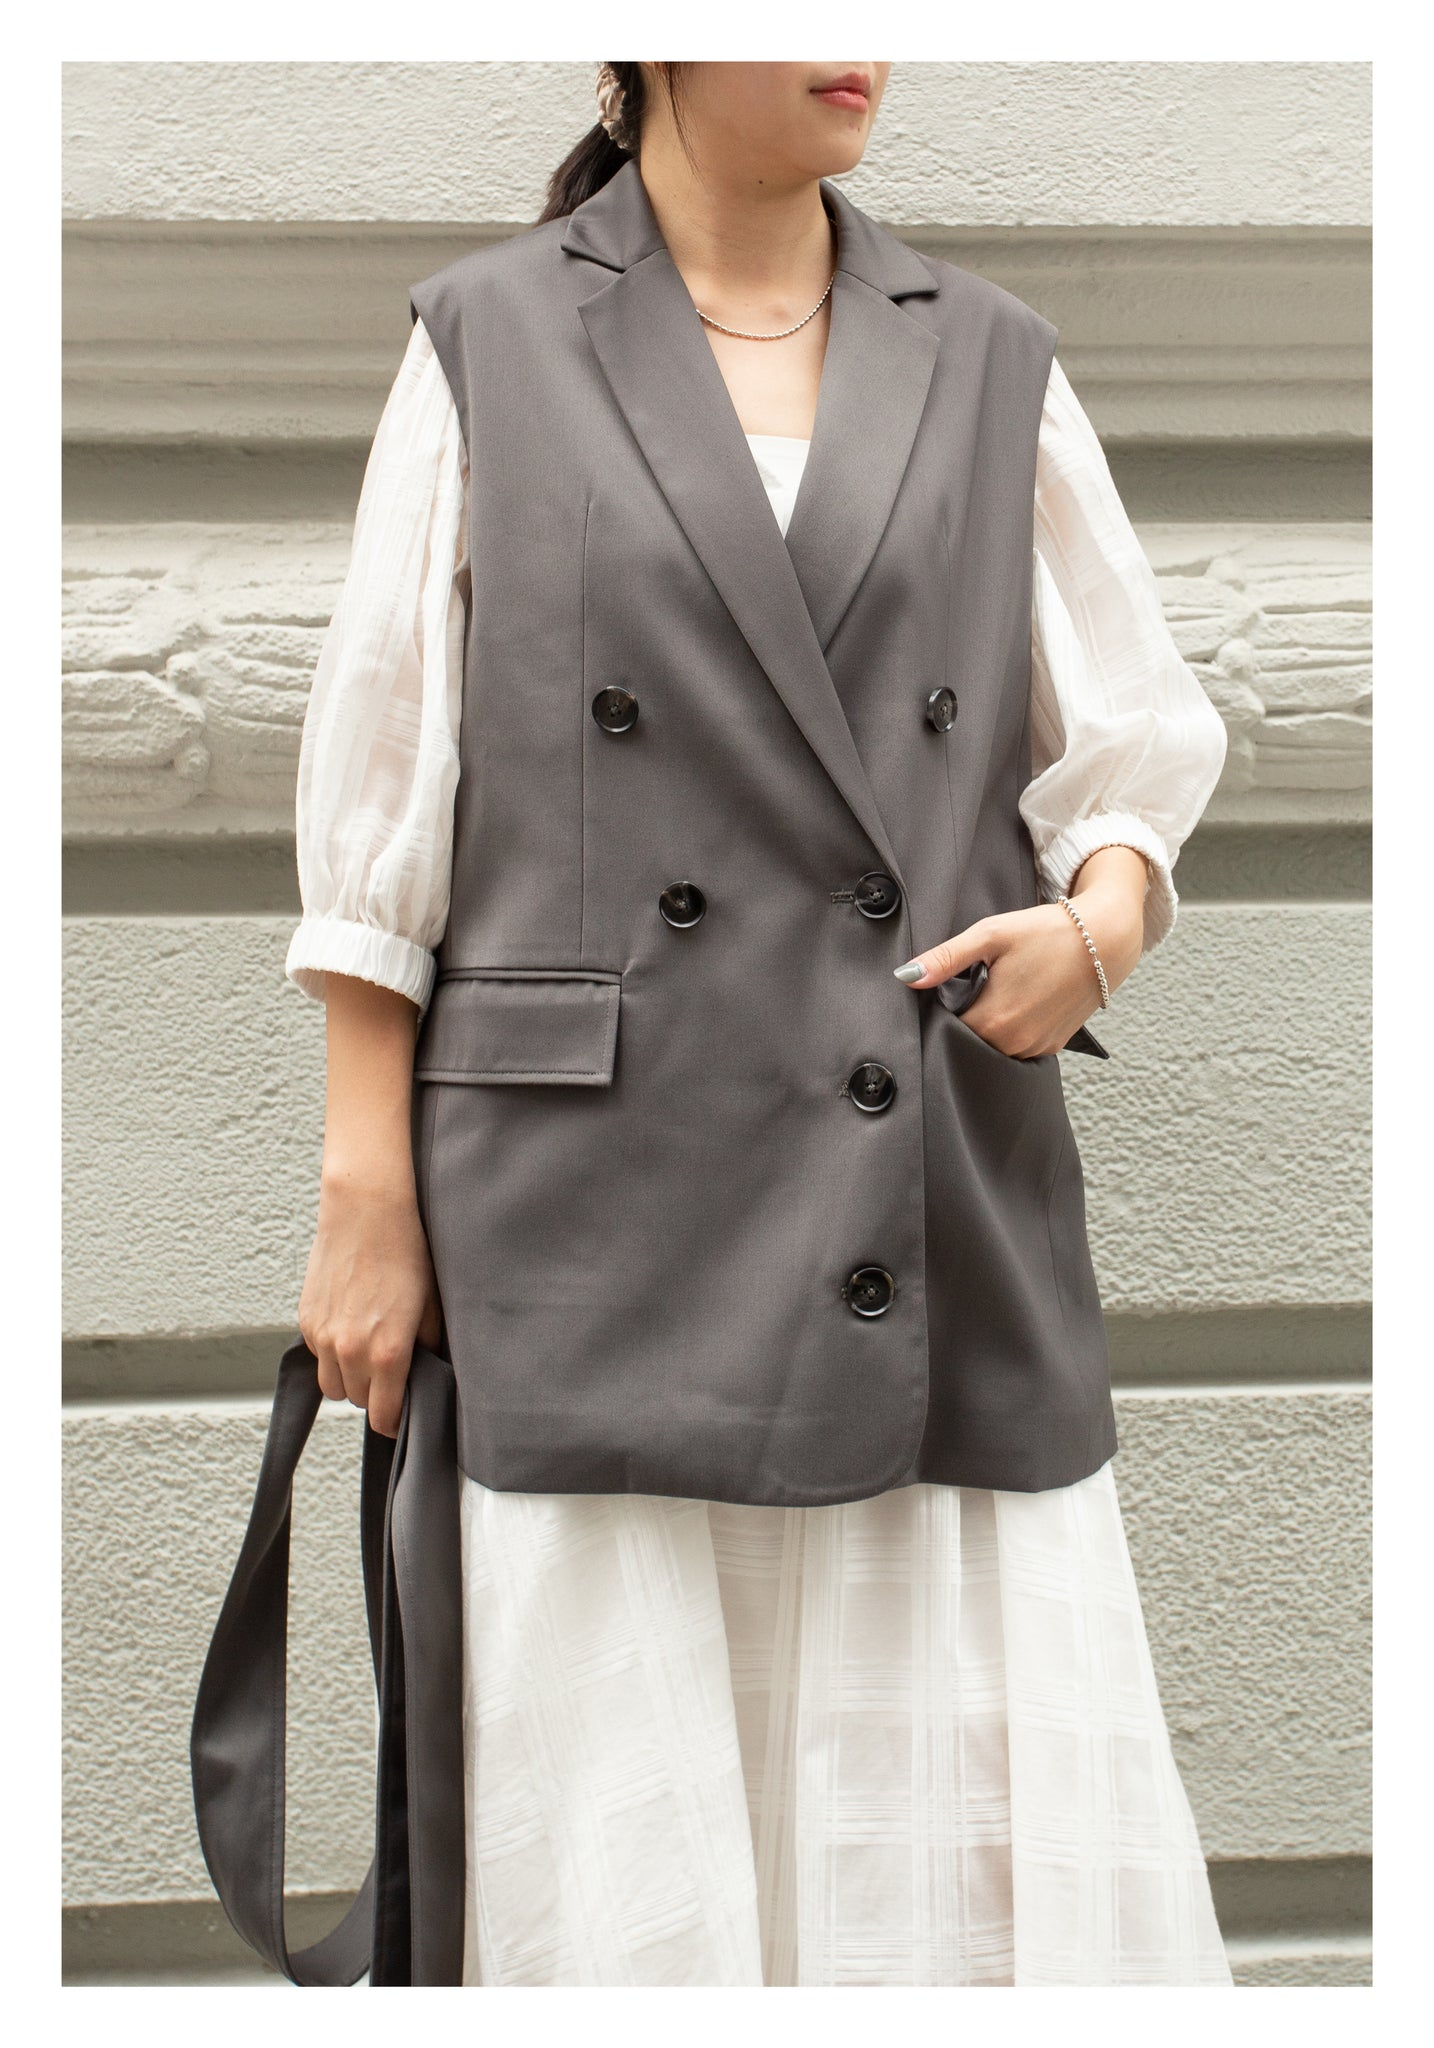 Removable Belt Tailor Vest Jacket Grey - whoami